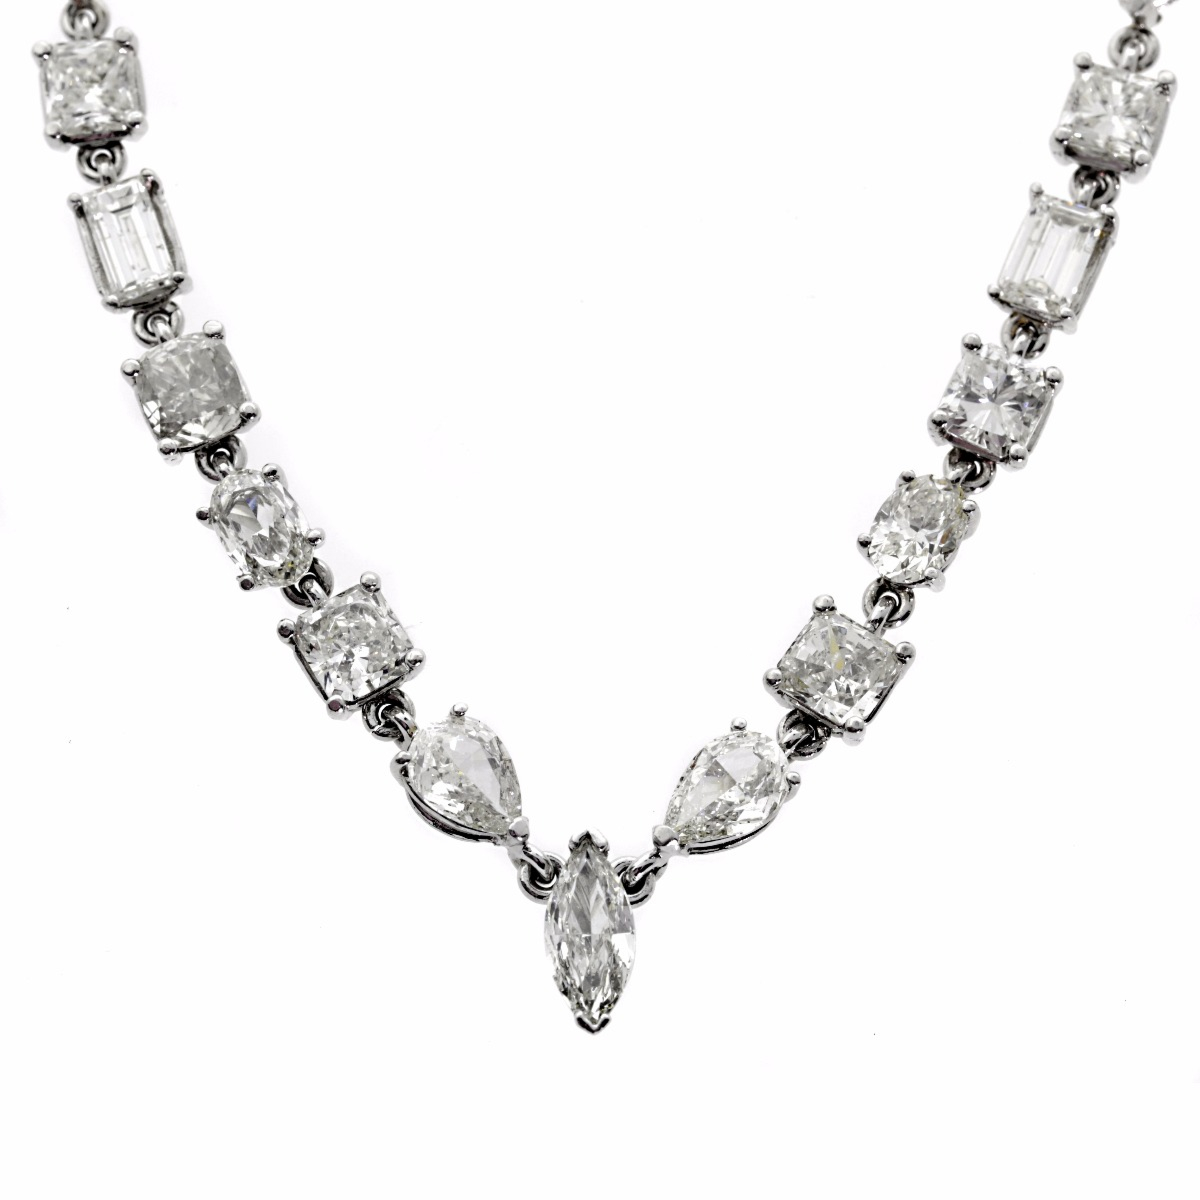 31 Carat Diamond Tennis Necklace - Estate Jewelry